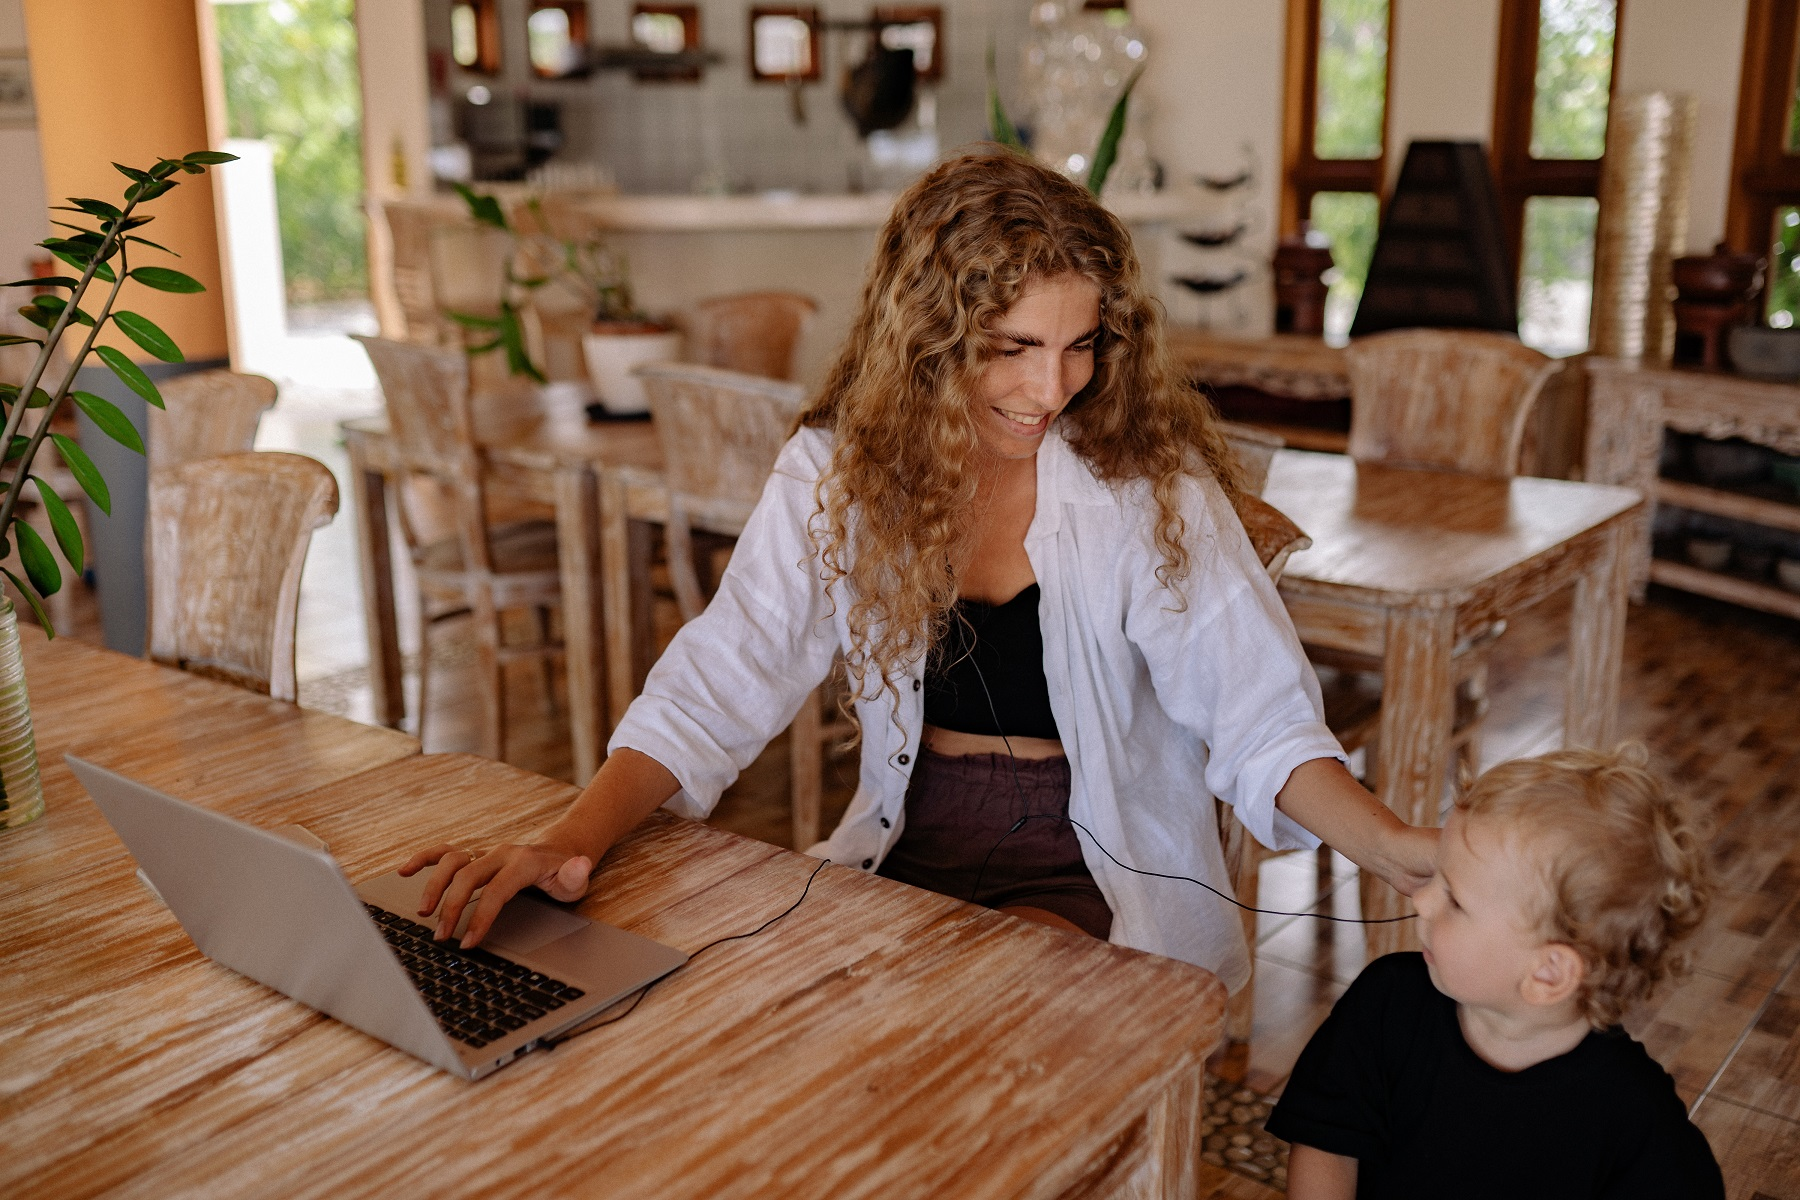 how does a working mom find the sweet spot of multitasking